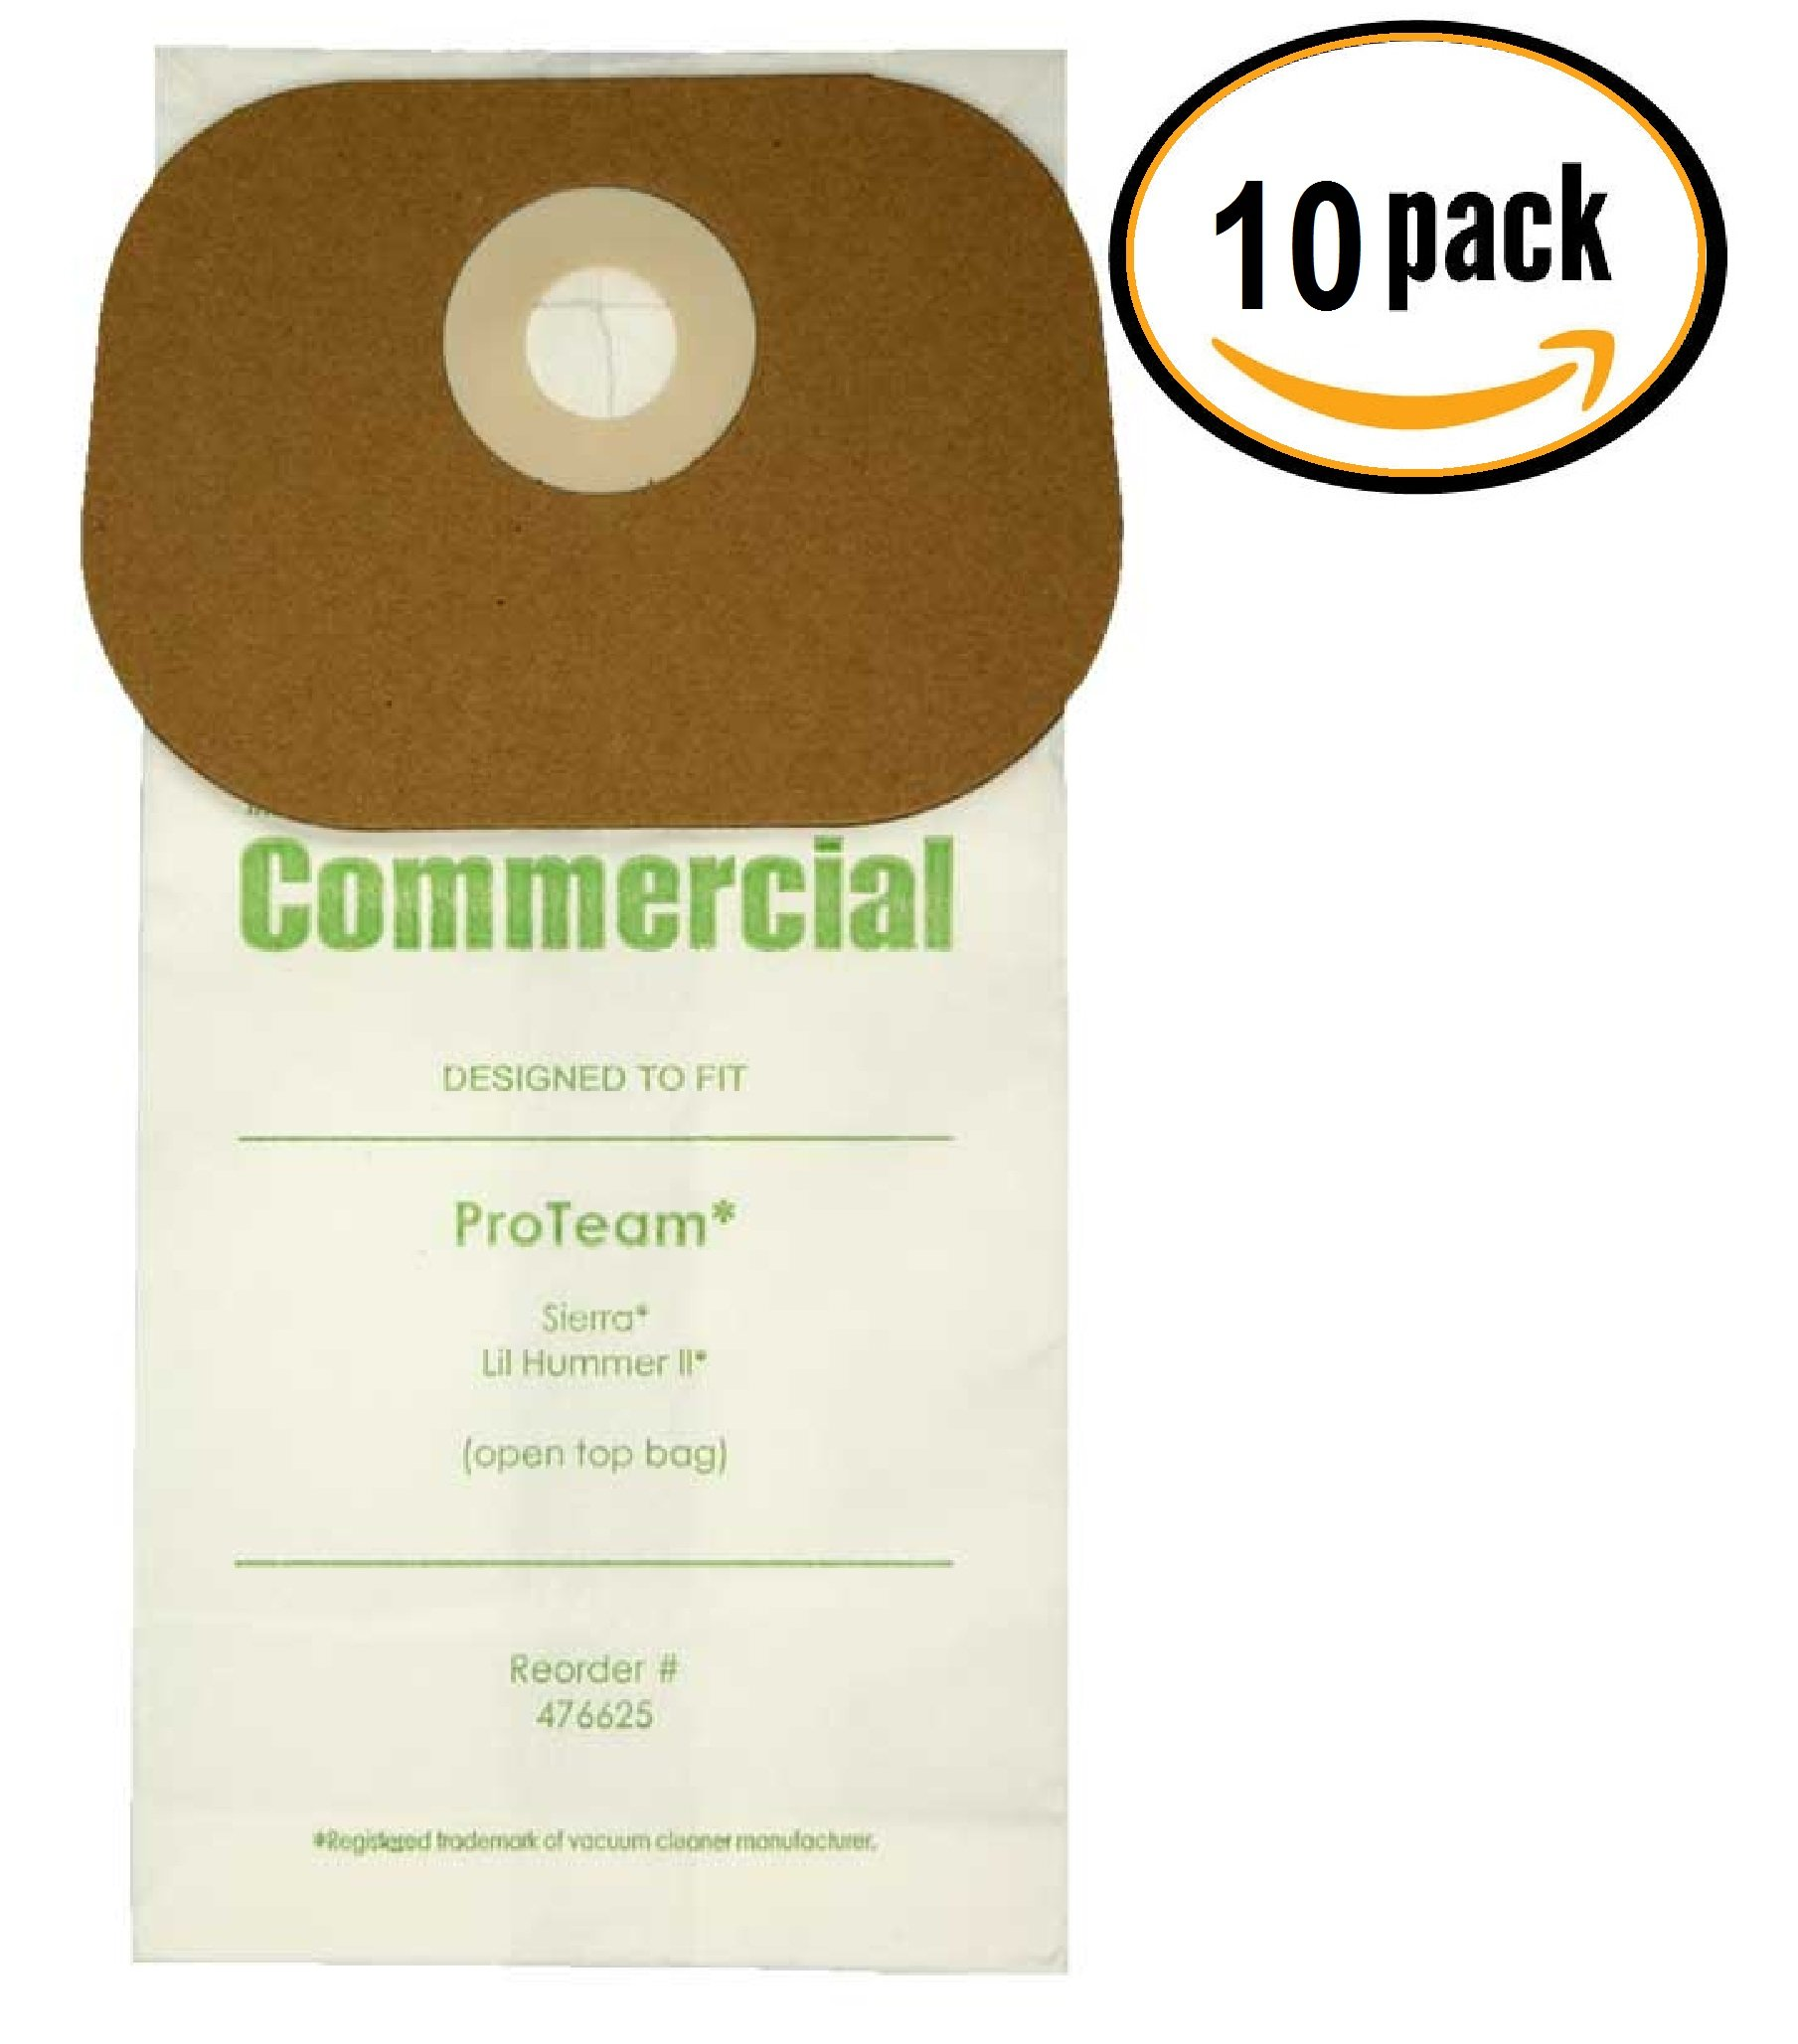 PRO 10 ProTeam Sierra, Lil Hummer Micro-Lined Commercial Backpack Bags, 10 Bags.